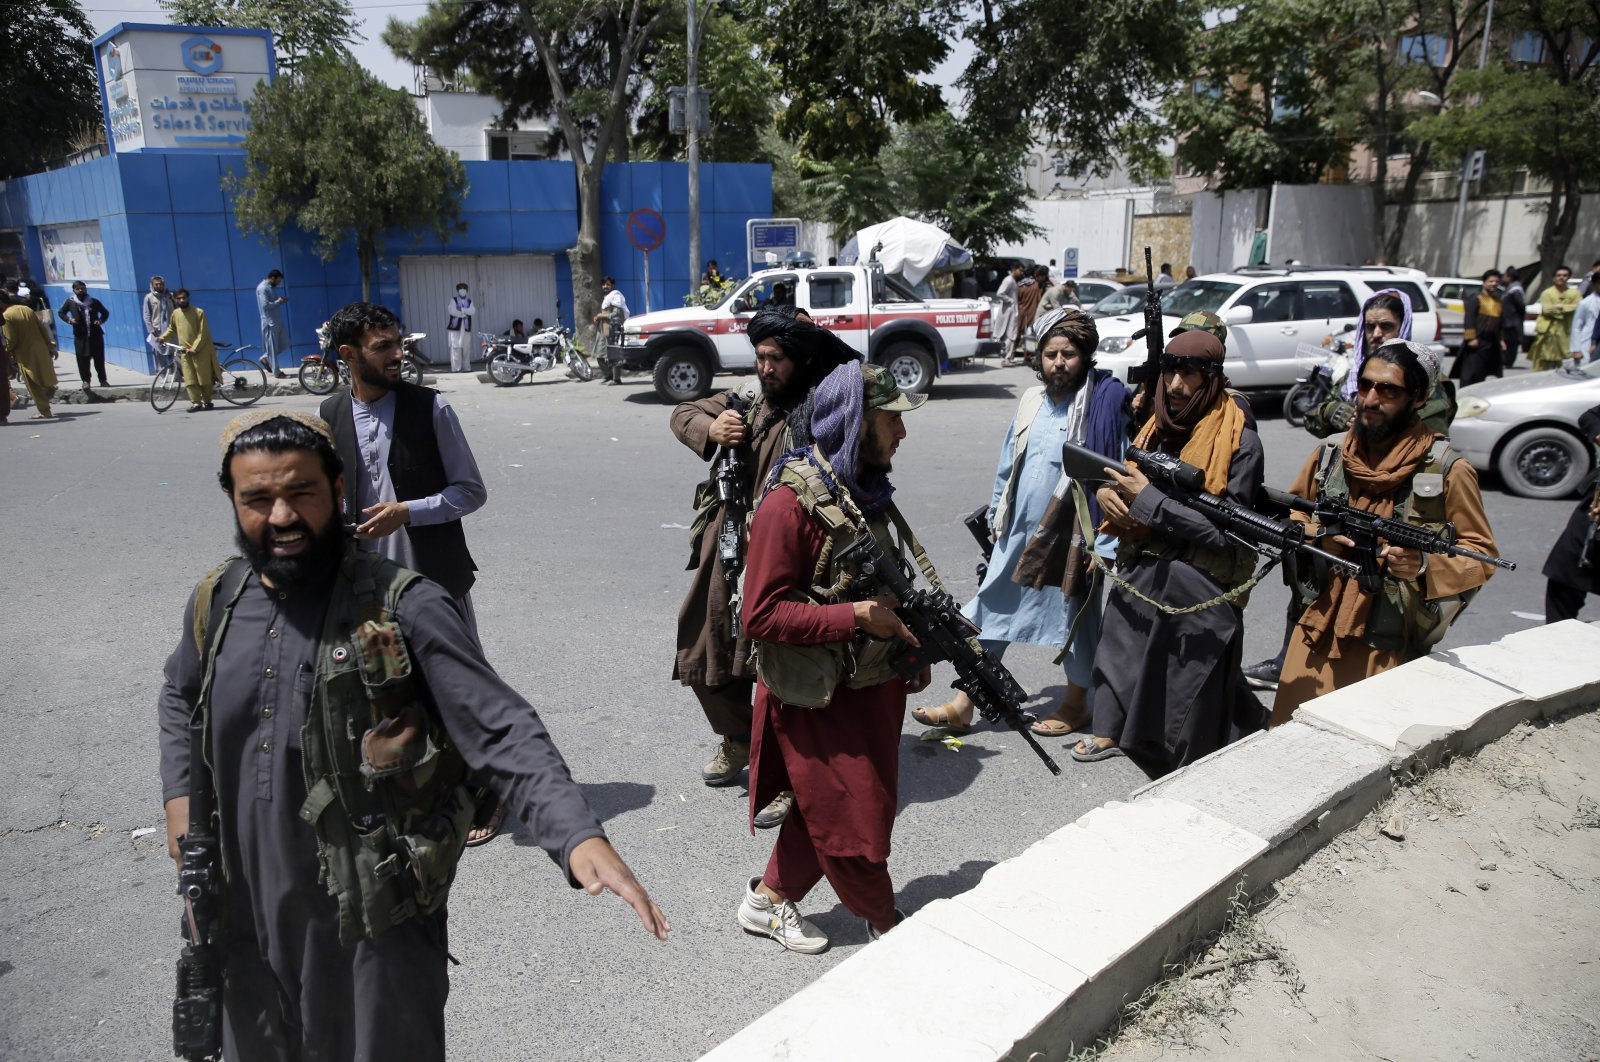 Taliban fighters patrol in Kabul, Afghanistan, Thursday, Aug. 19, 2021. (AP Photo)